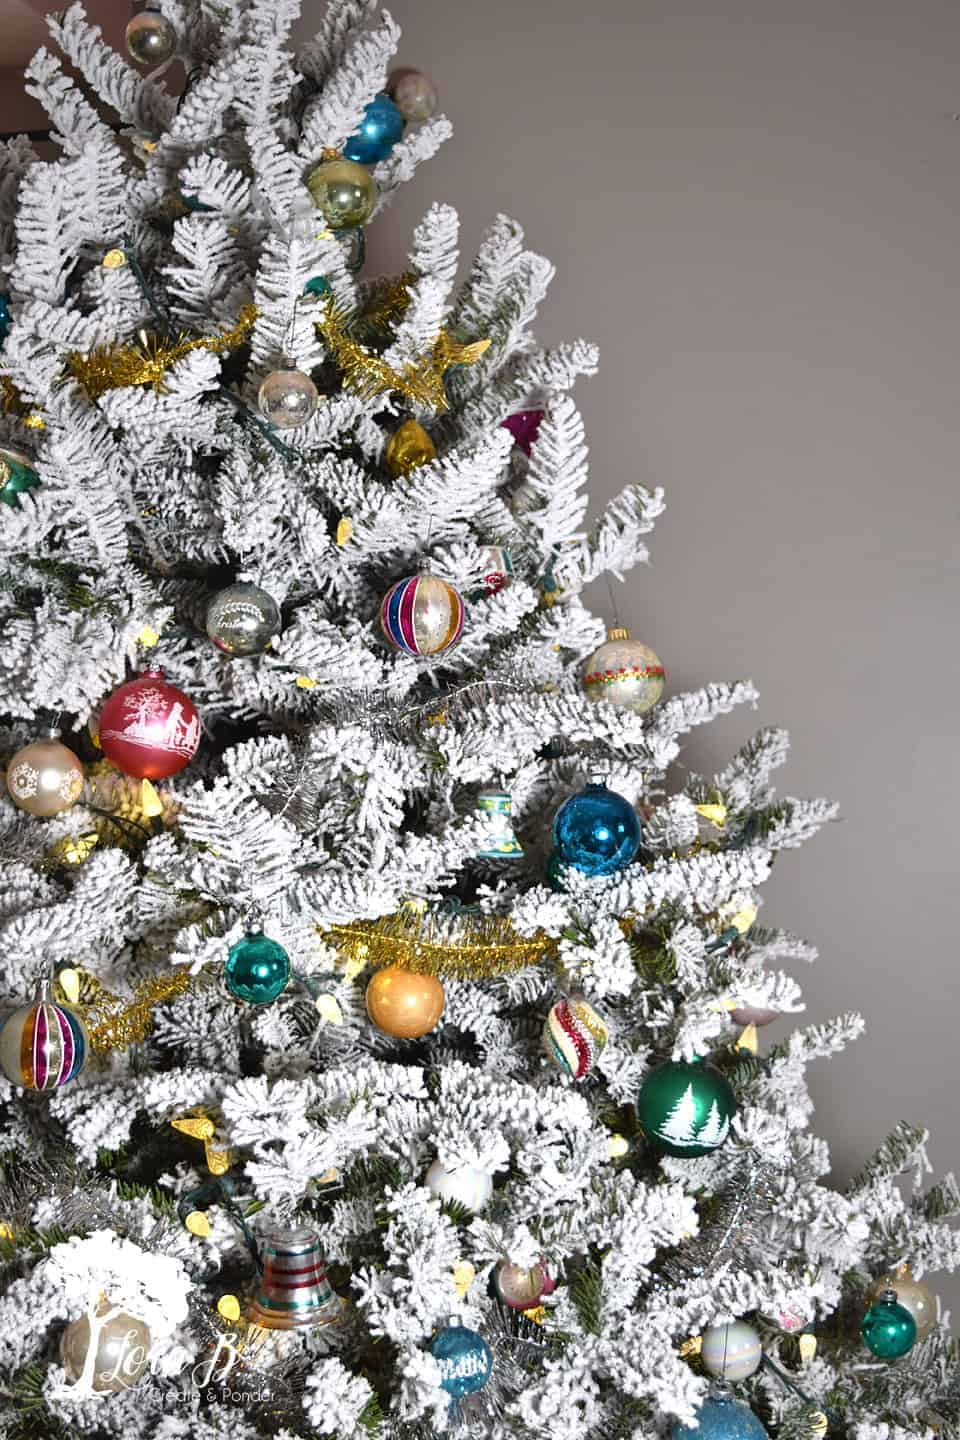 flocked Christmas tree with shiny brites